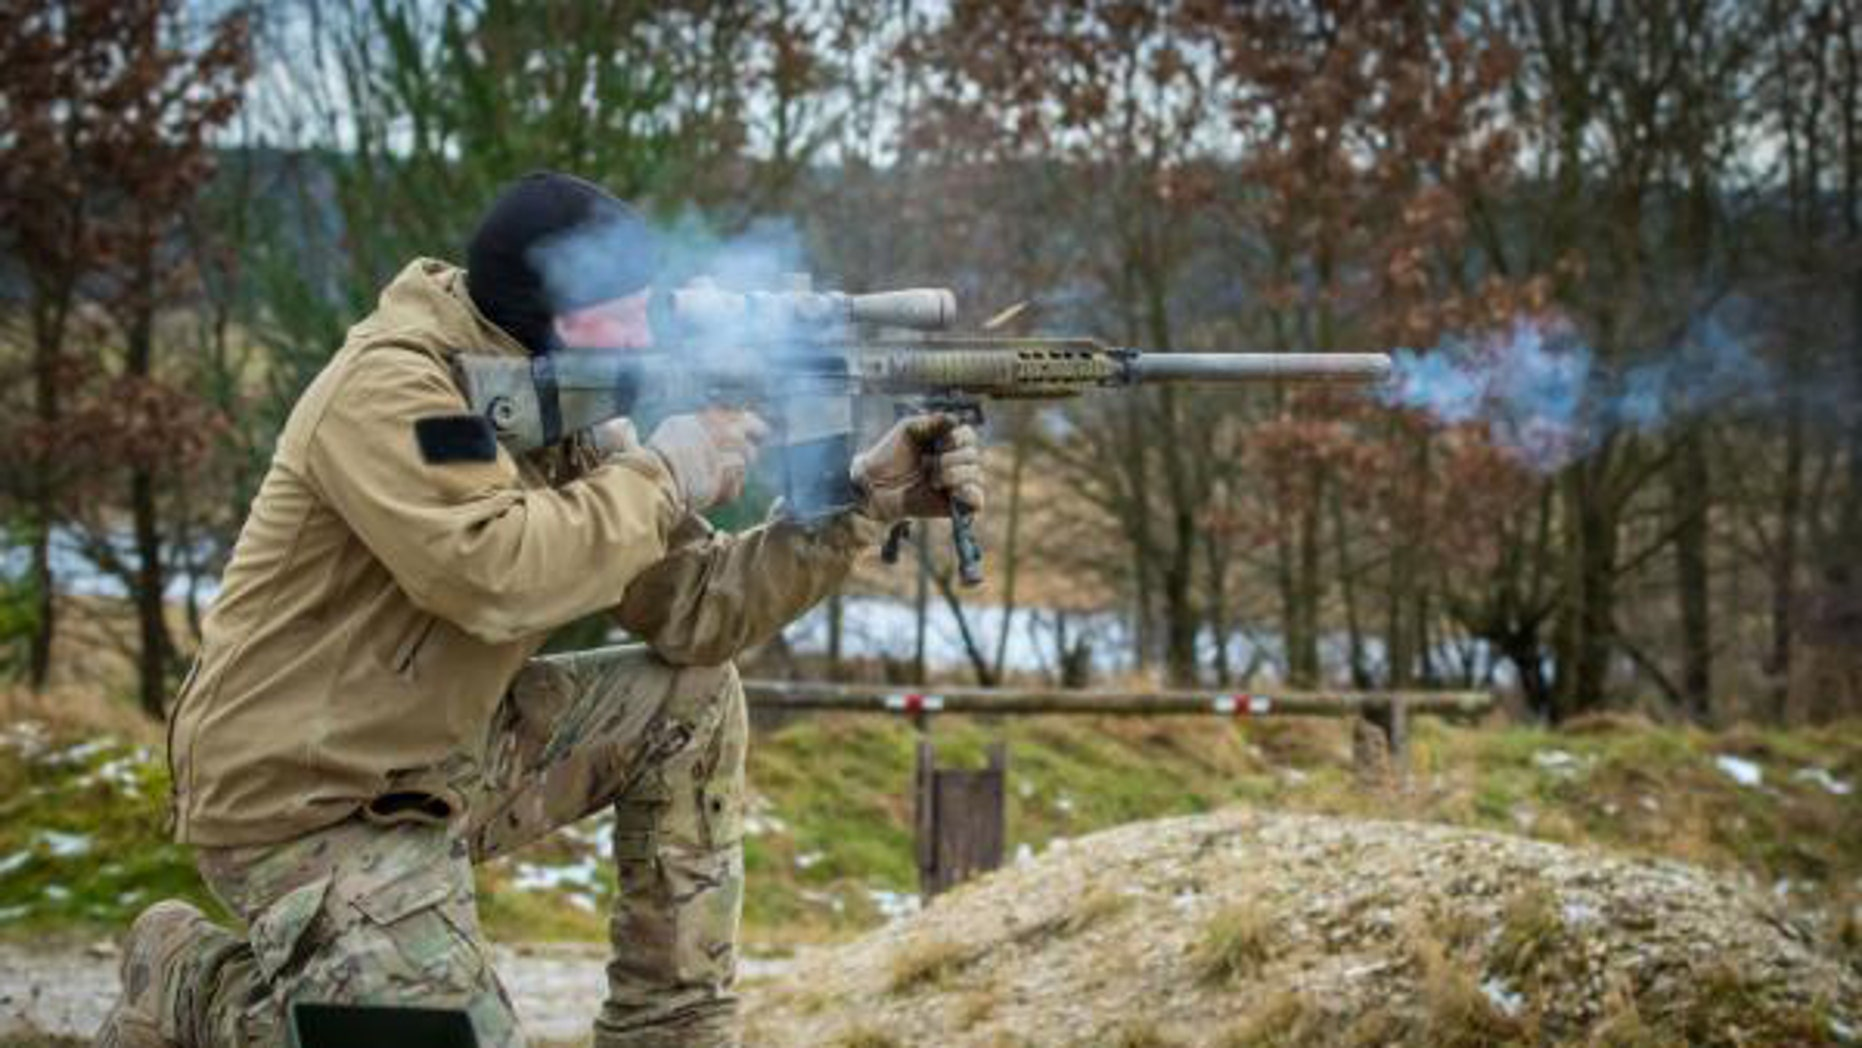 A U.S. Army Special Forces Soldier assigned to 10th Special Forces Group (Airborne) fires an M110 Semi-Automatic Sniper System during weapons training in Grafenwoehr, Germany, Dec., 12, 2017. (Photo by Staff Sgt. Jessica Nassirian/U.S. Army)